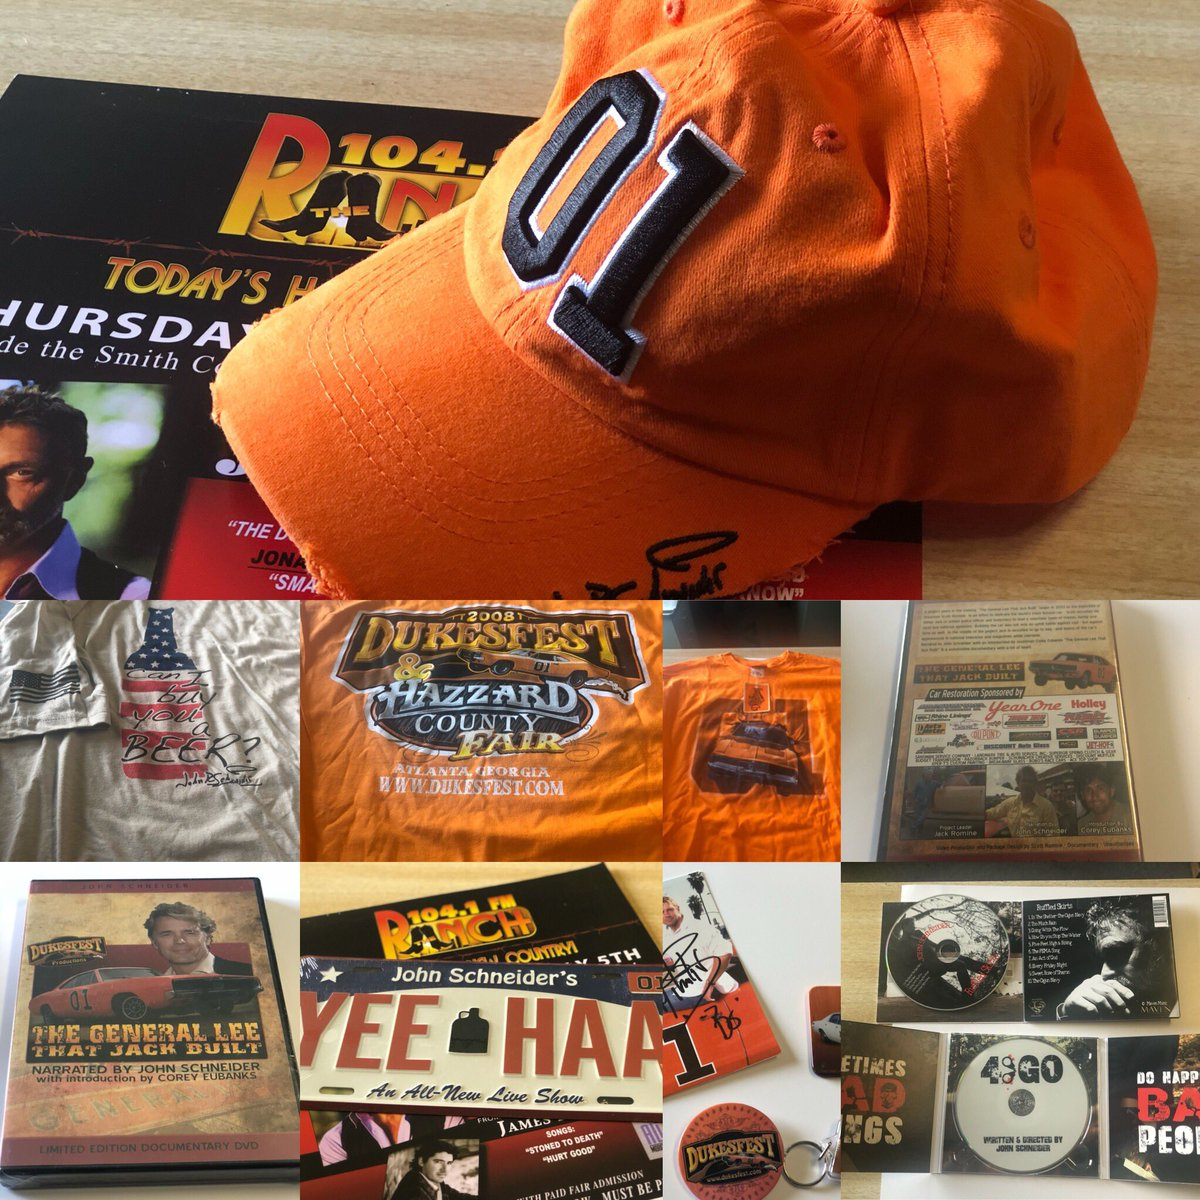 One person -our smith County Bank -John Schneider VIP winner picks up ALL of these!!! Plus special up close seats!! Registration boxes will be picked up next Wednesday (some locations sooner), so hurry!! <br>http://pic.twitter.com/IYNStMsgSs